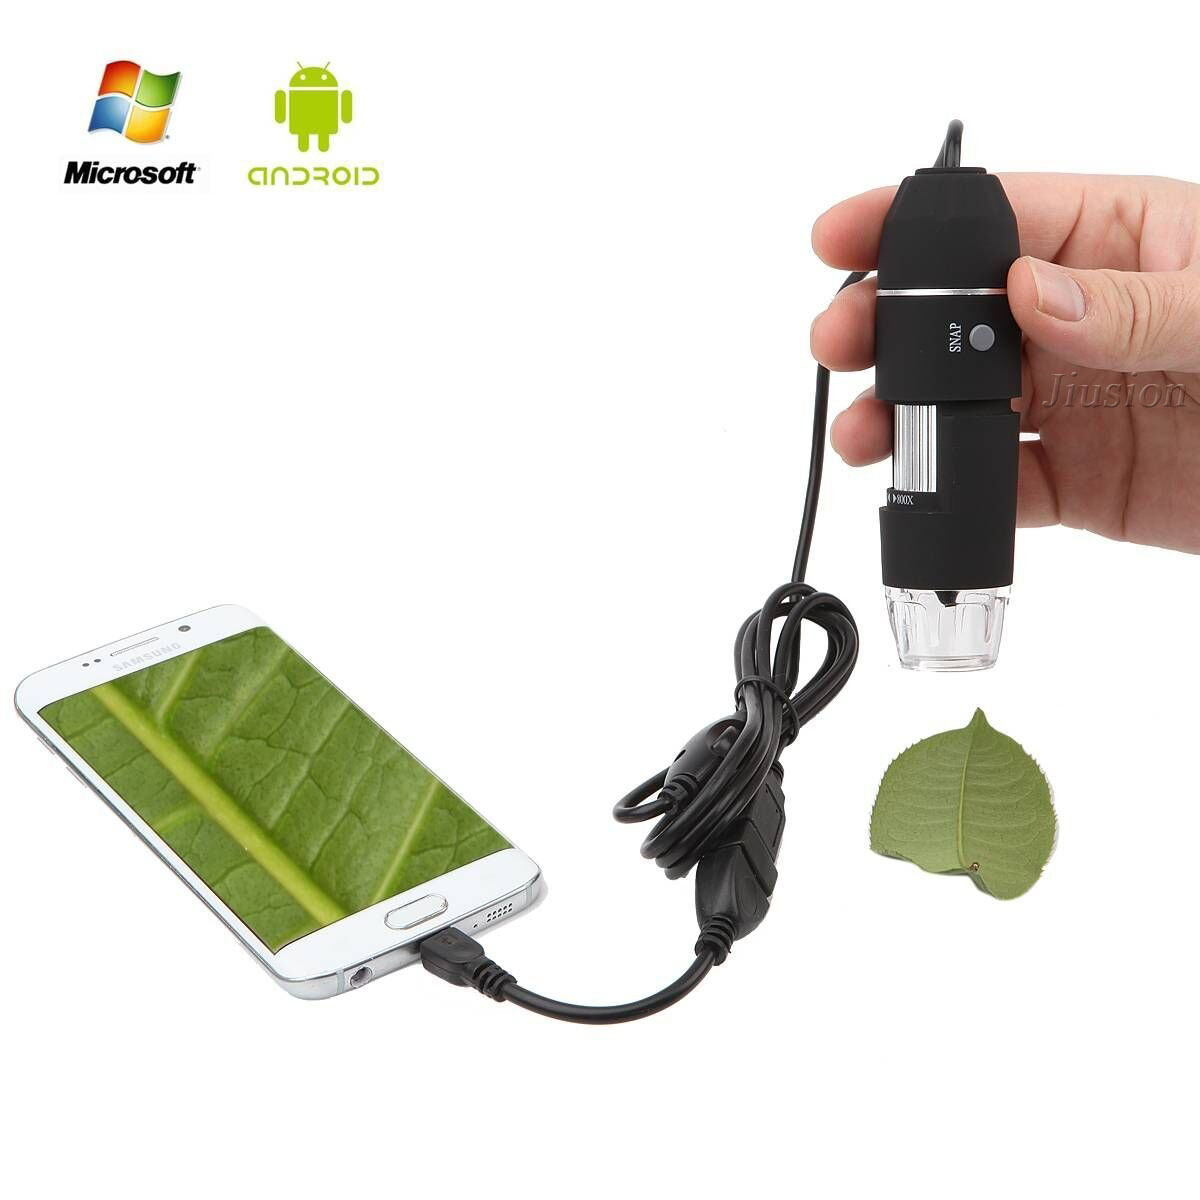 500 800 1000x USB Digital Microscope Camera Magnification Endoscope OTG with Stand for Samsung Android Mobile Window Radio